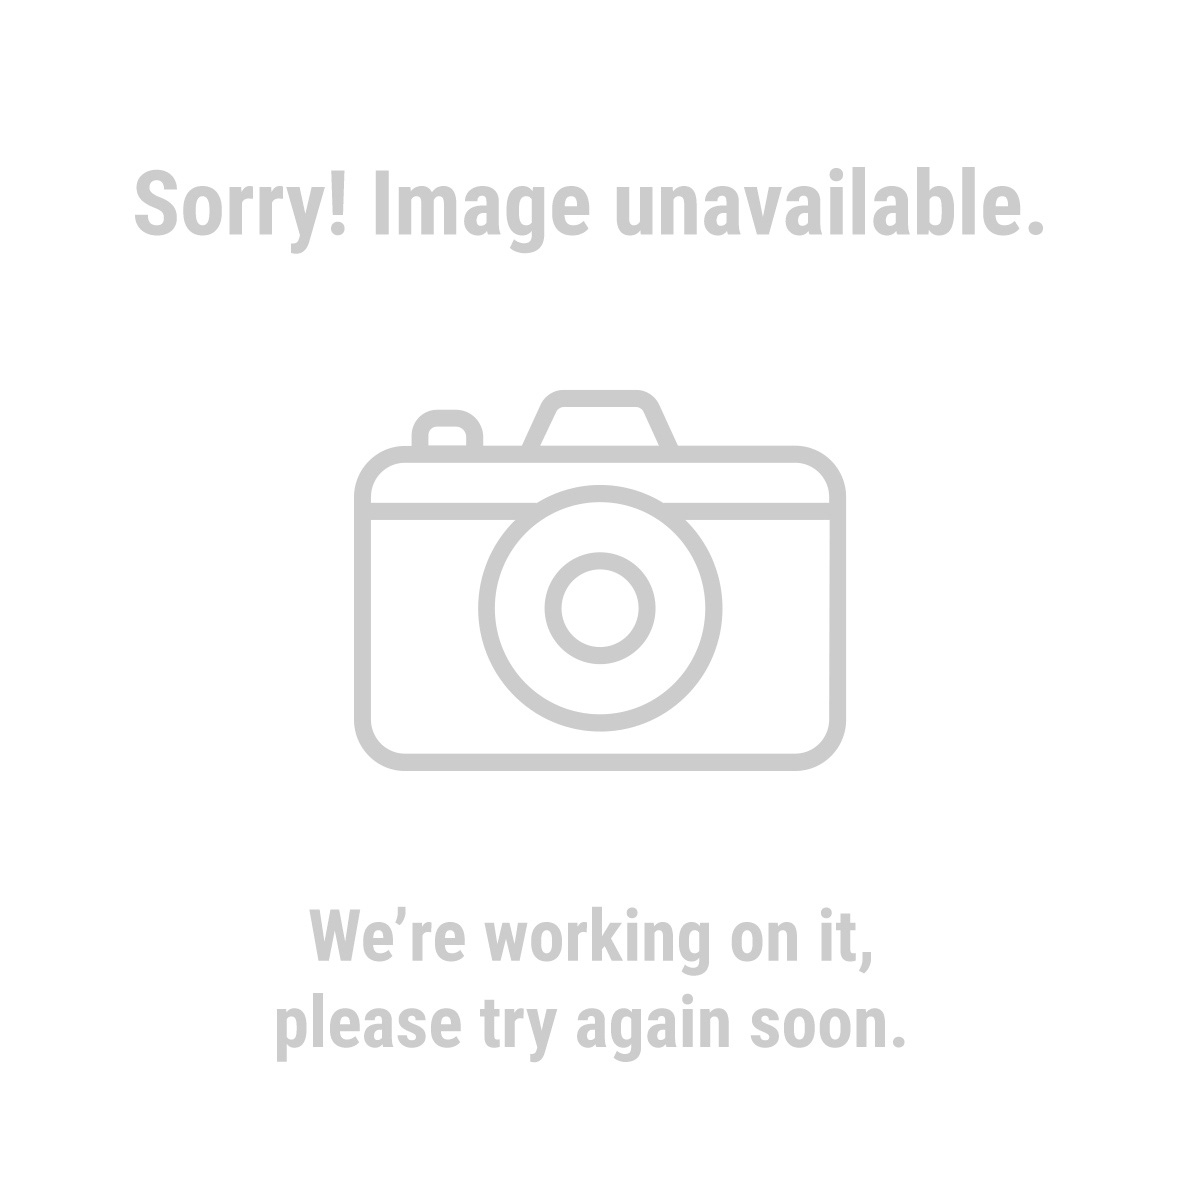 Haul-Master® 61303 1000 lb. Capacity 1-1/2 in. x 10 ft. Ratcheting Tie Down Set of 4